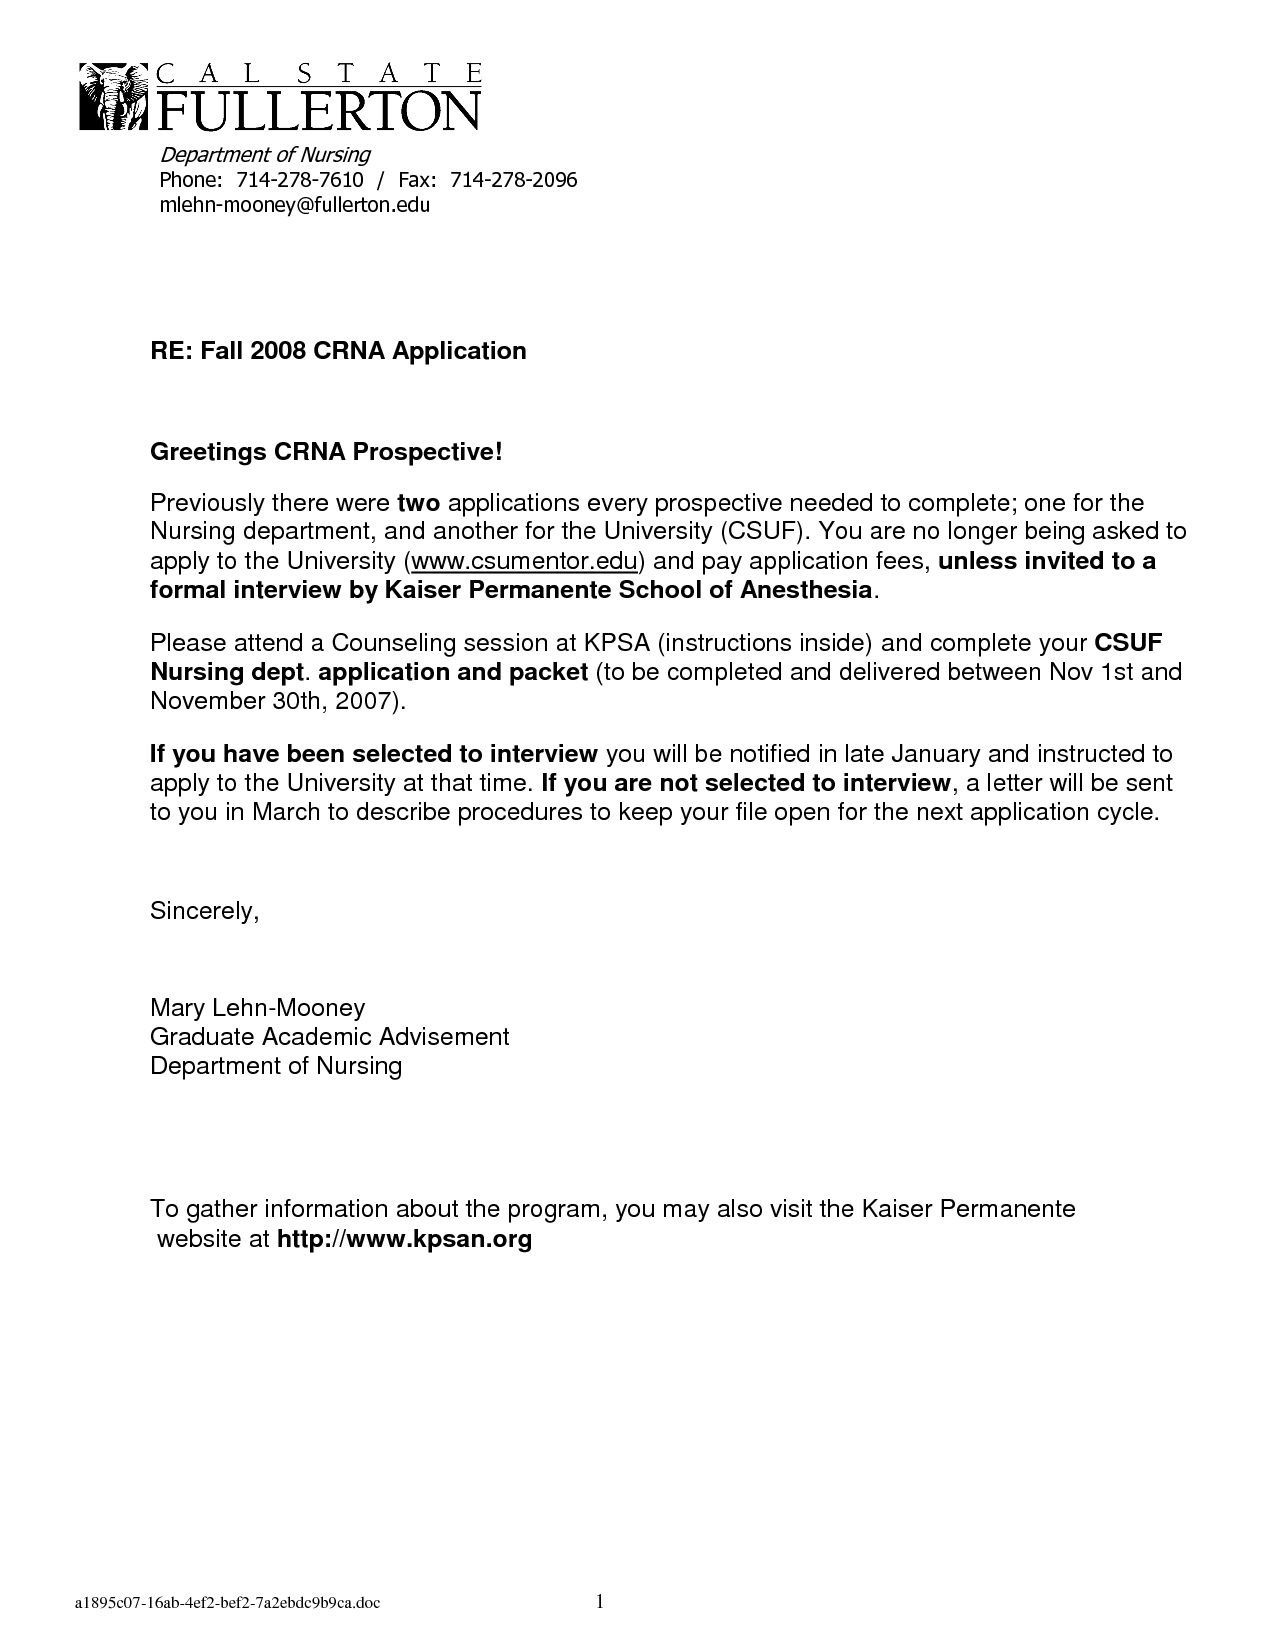 006 Awesome Letter Of Recommendation Template High Resolution  Word Sample For College Admission Student DocFull